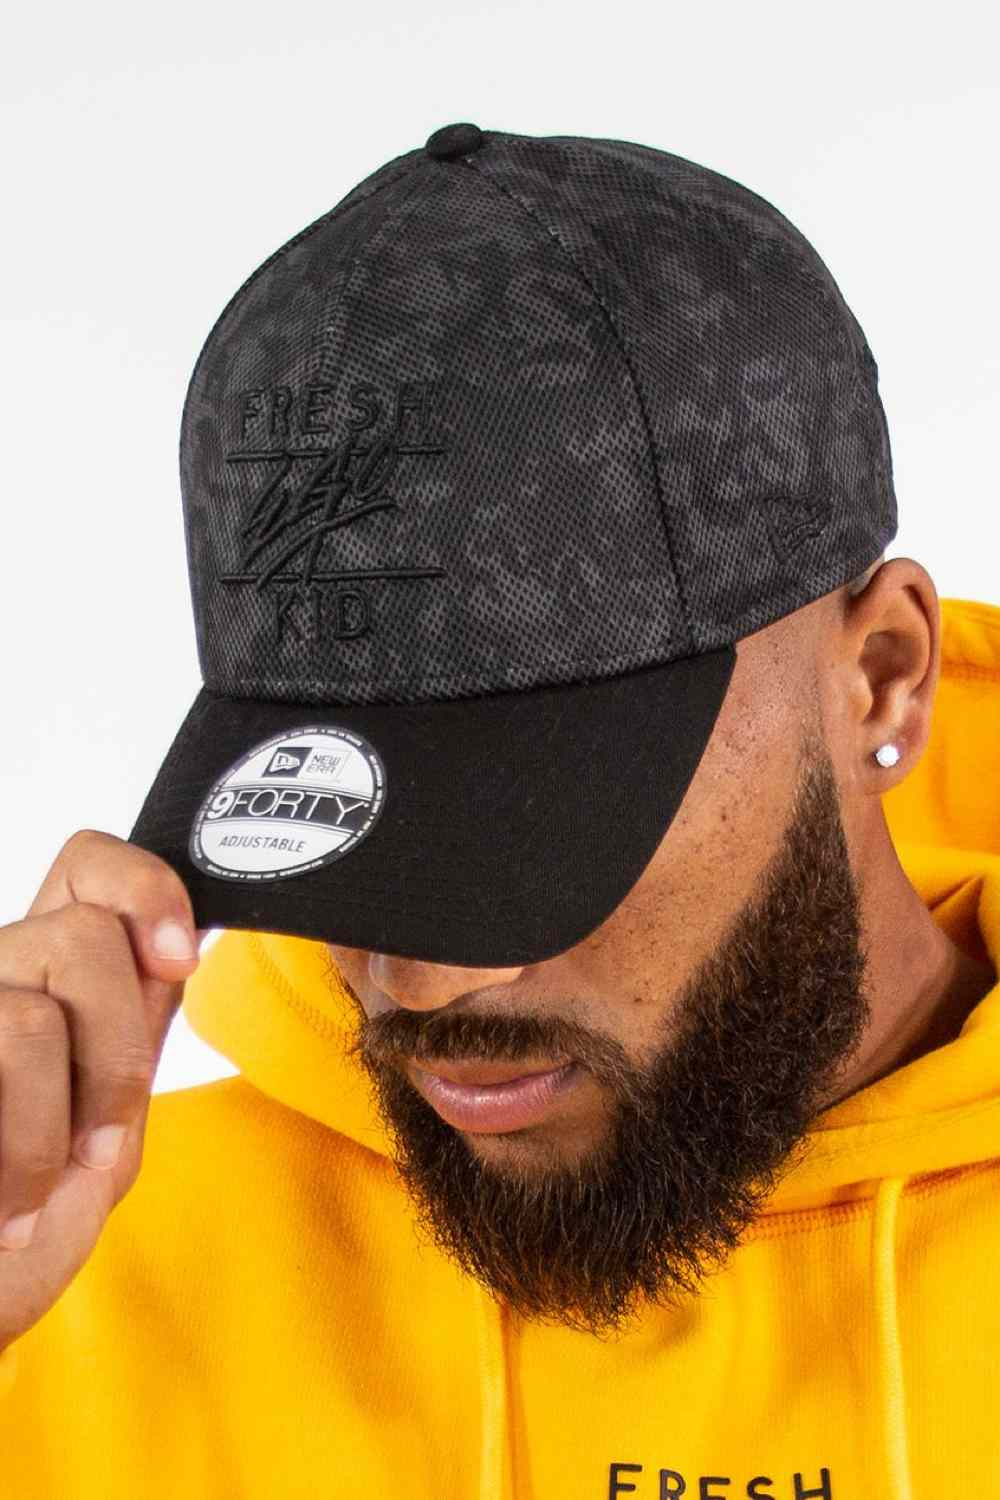 Fresh Ego Kid New Era Polo Cap - Black/Camo